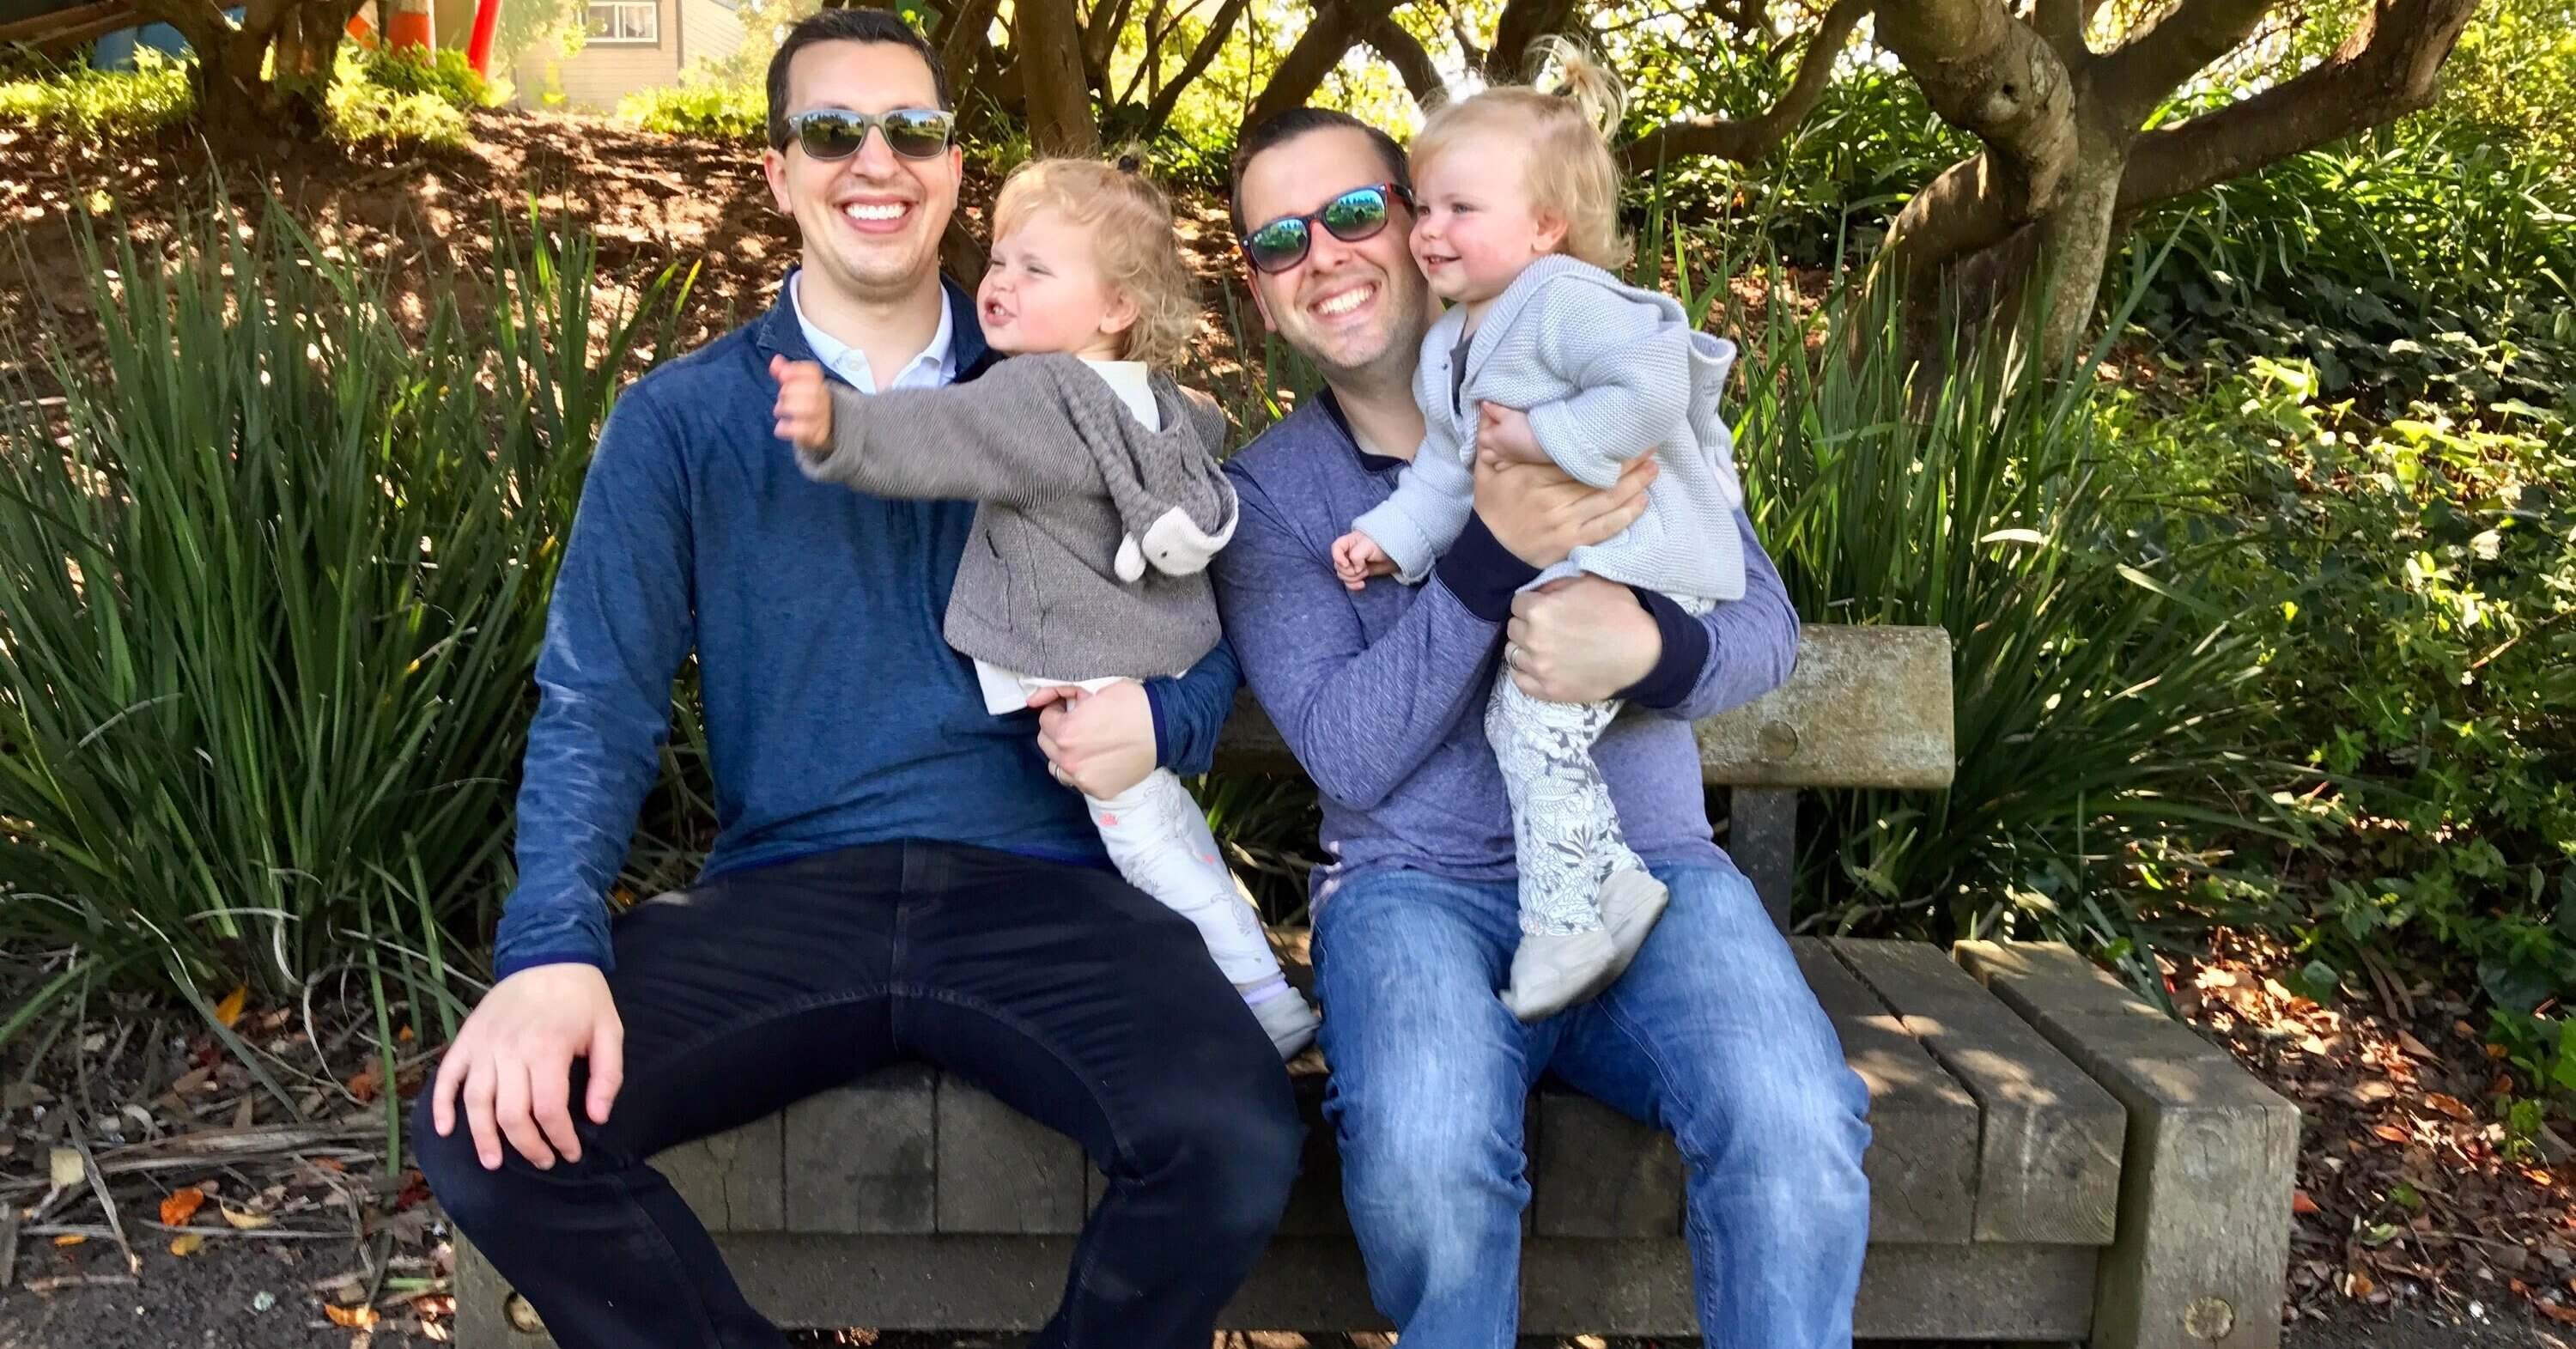 surrogacy was the path for fatherhood for these dads twin girls